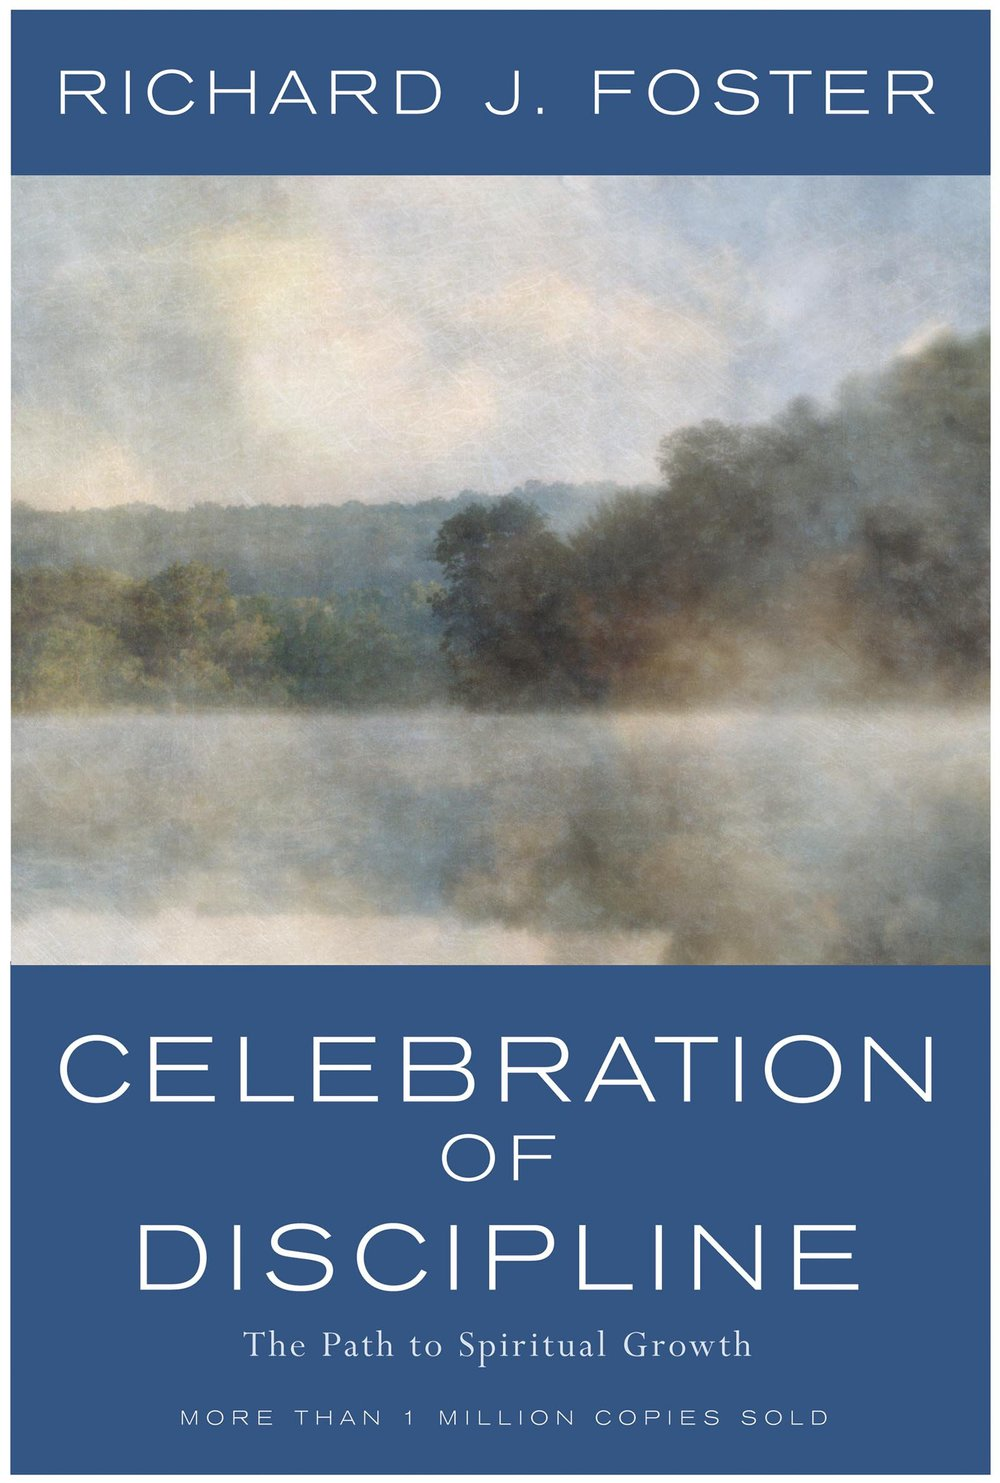 Celebration of Discipline: The Path to Spiritual Growth Richard J. Foster